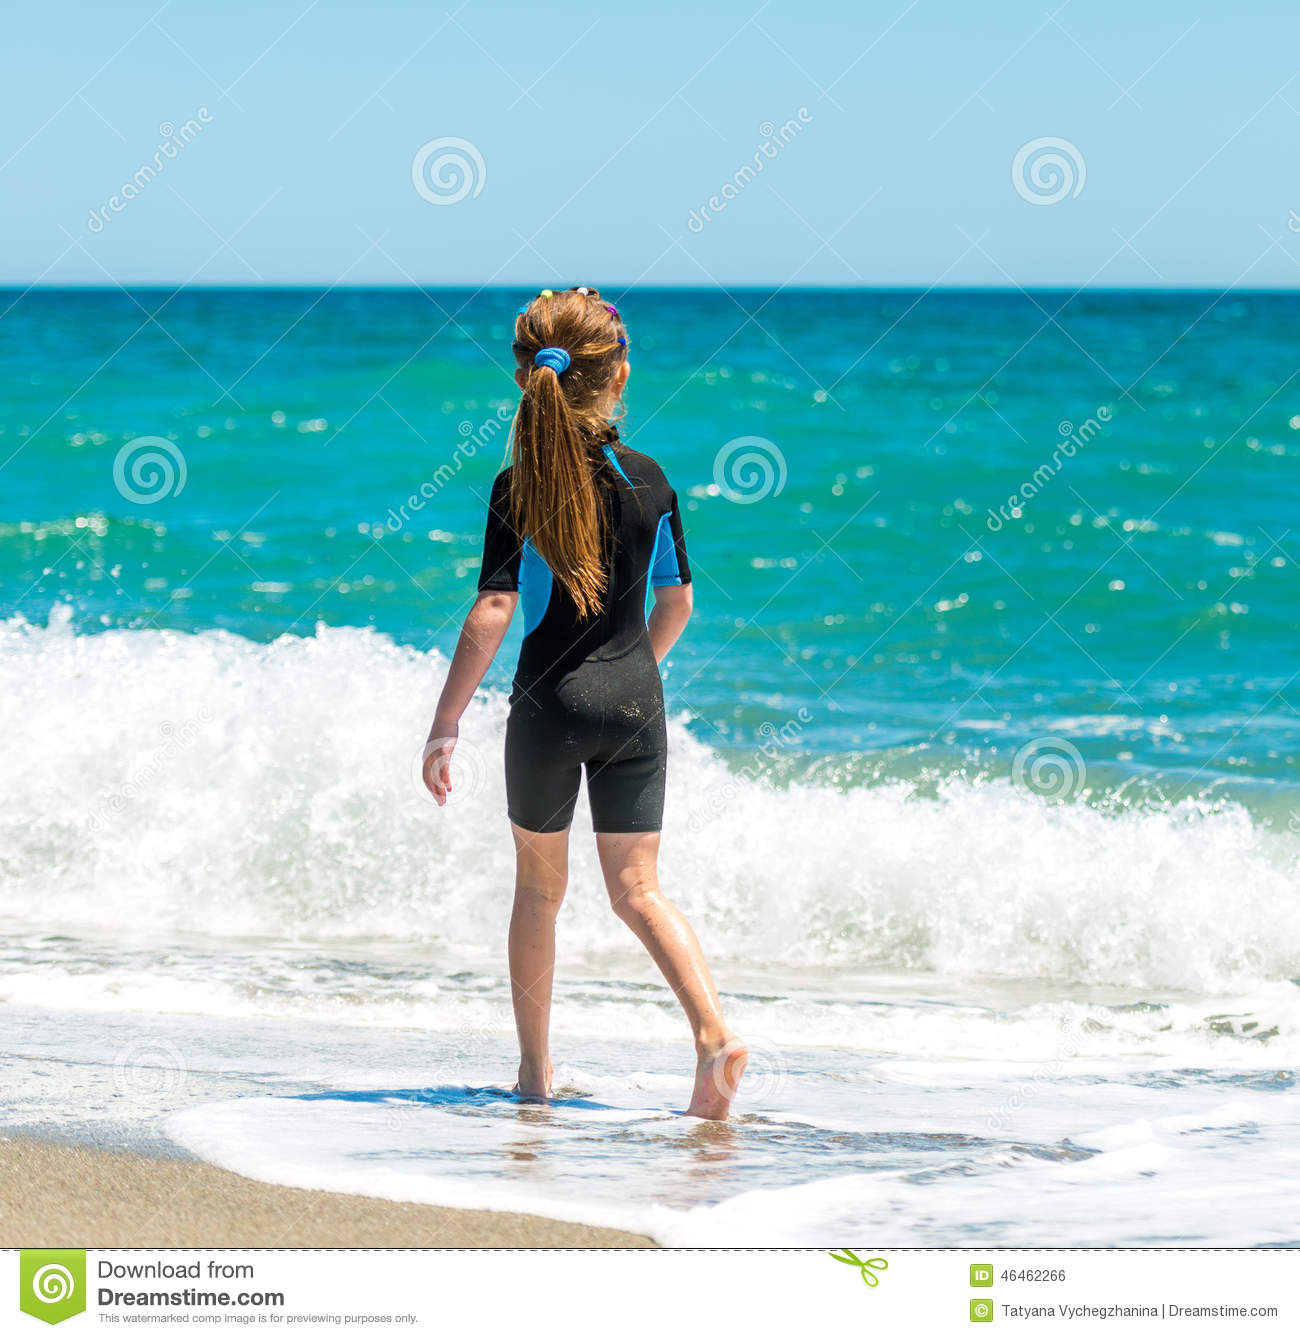 b314923c33 Girl In A Wetsuit Running Along The Beach Stock Photo - Image of ...